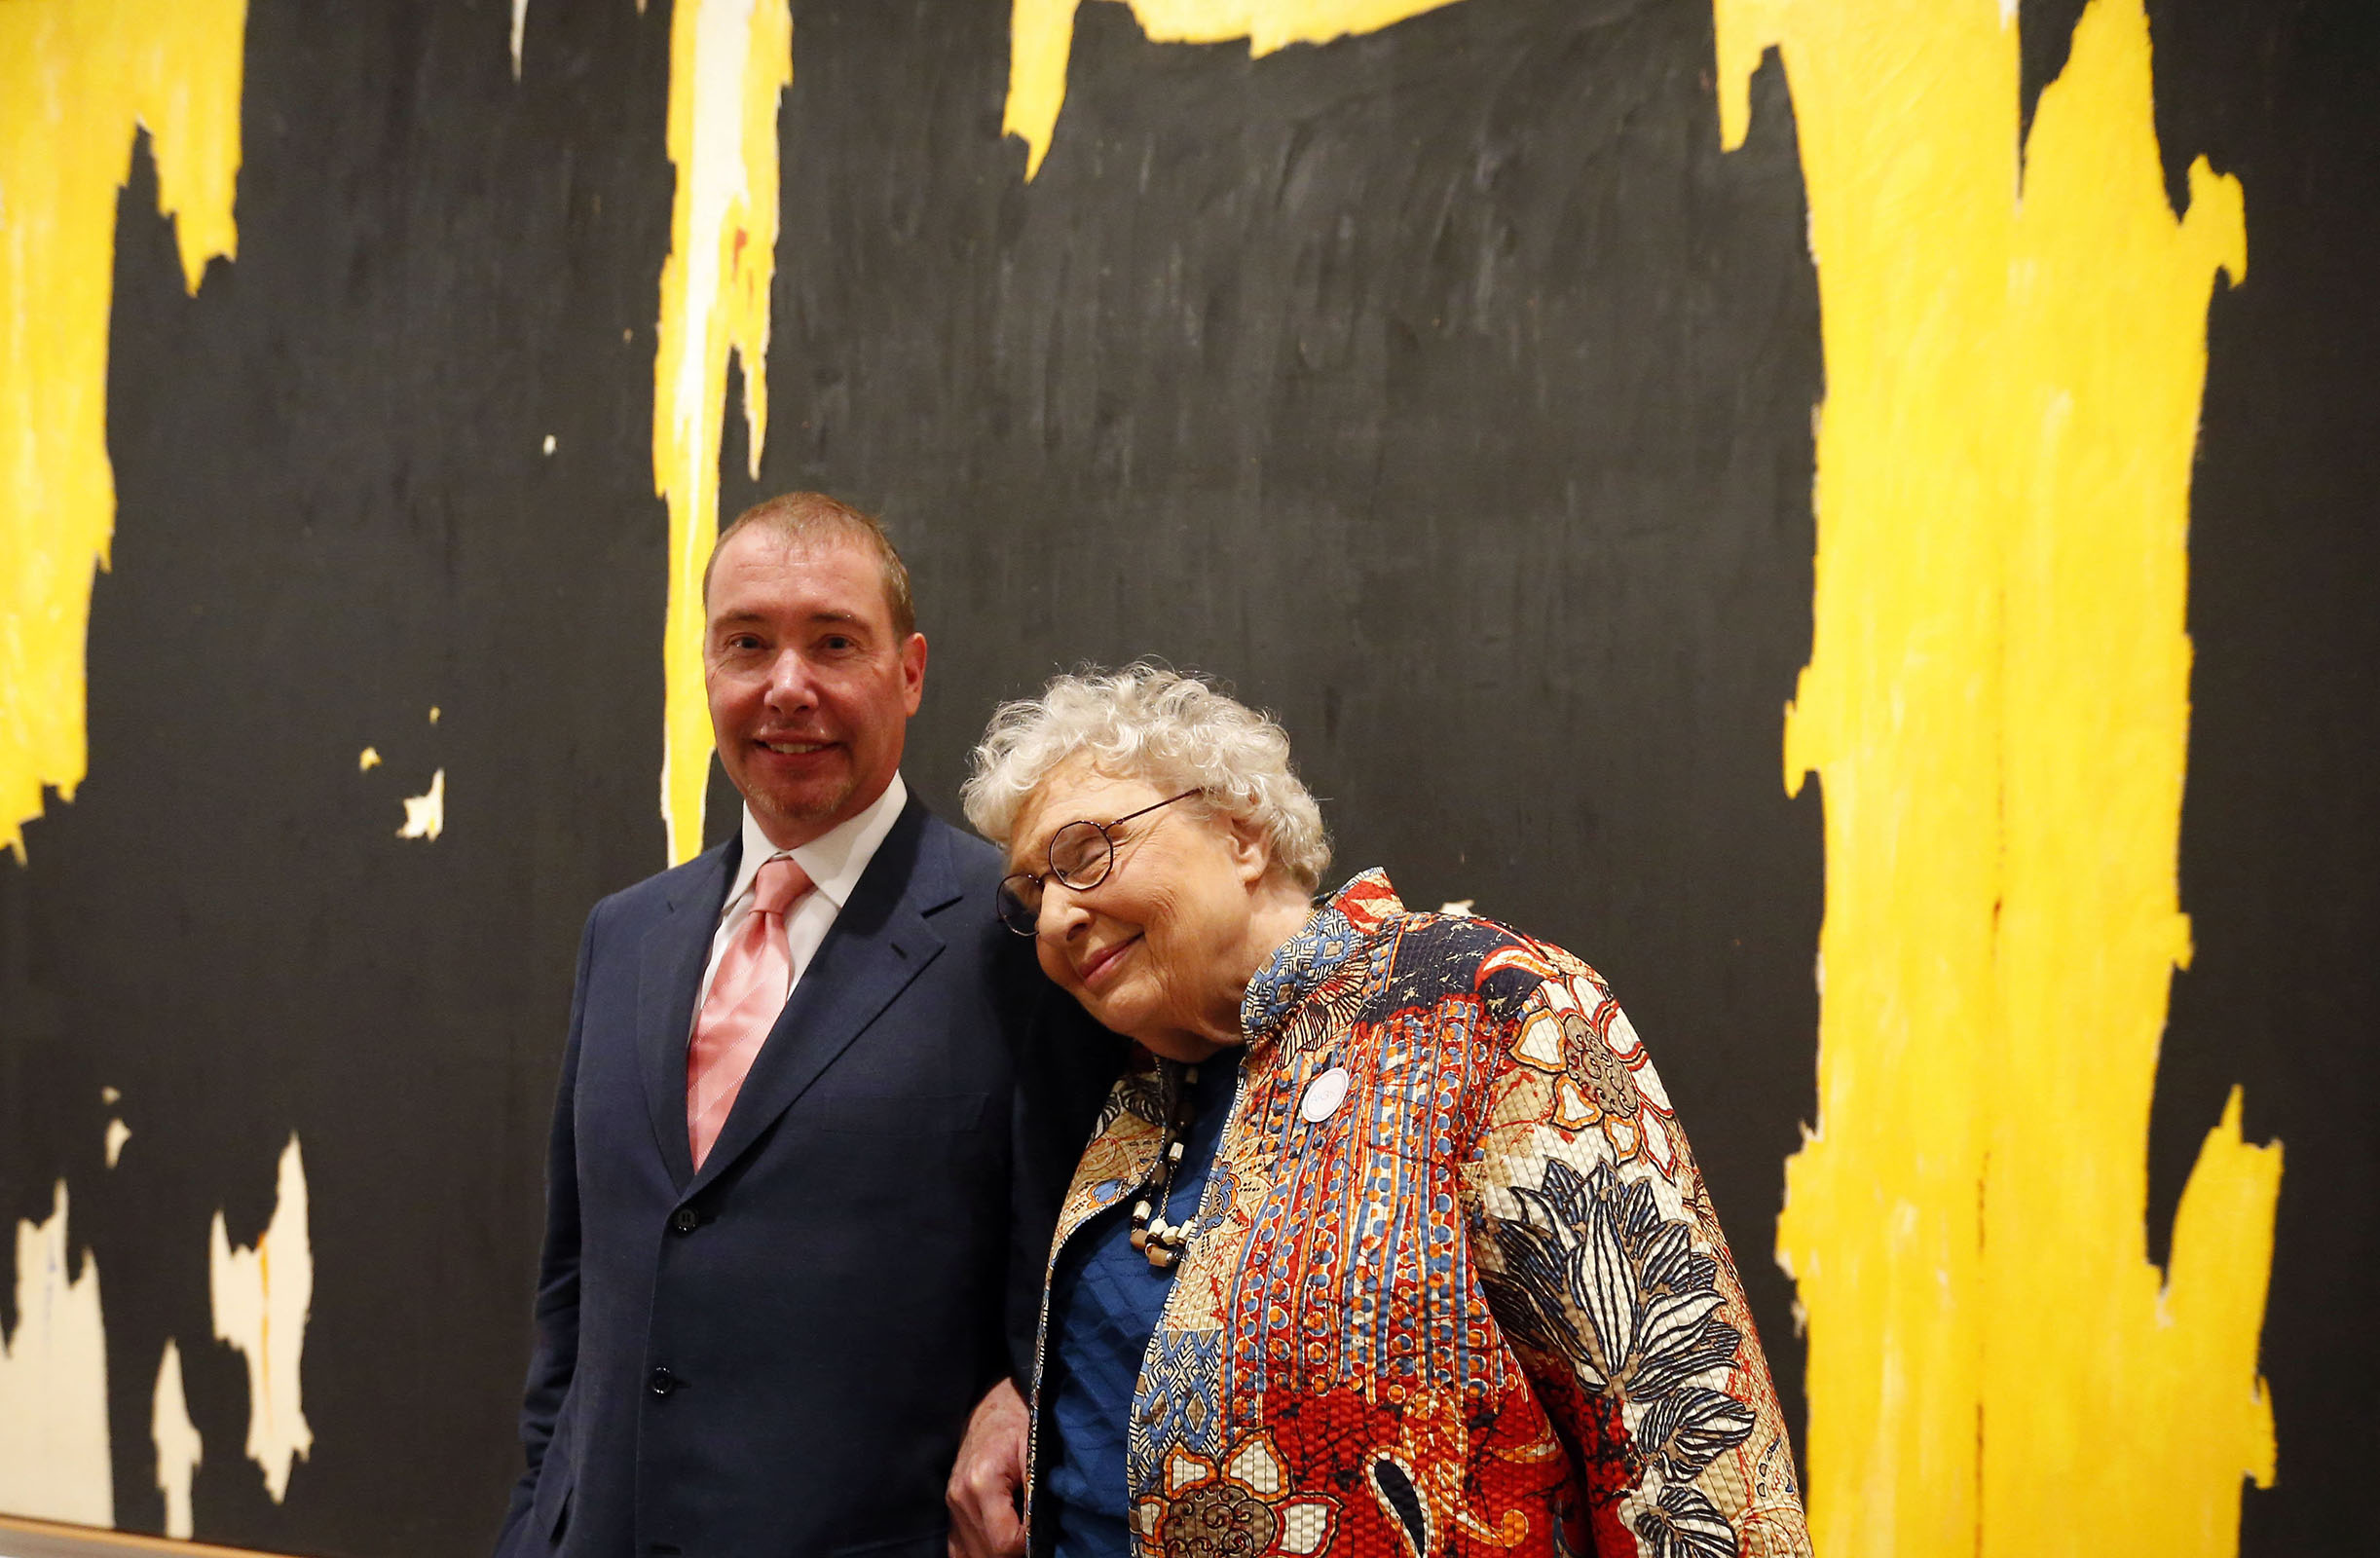 Jeffery Gundlach with his mother at the Albright Knox Art Gallery in Buffalo Friday, Sept. 23, 2016. (Mark Mulville/Buffalo News)